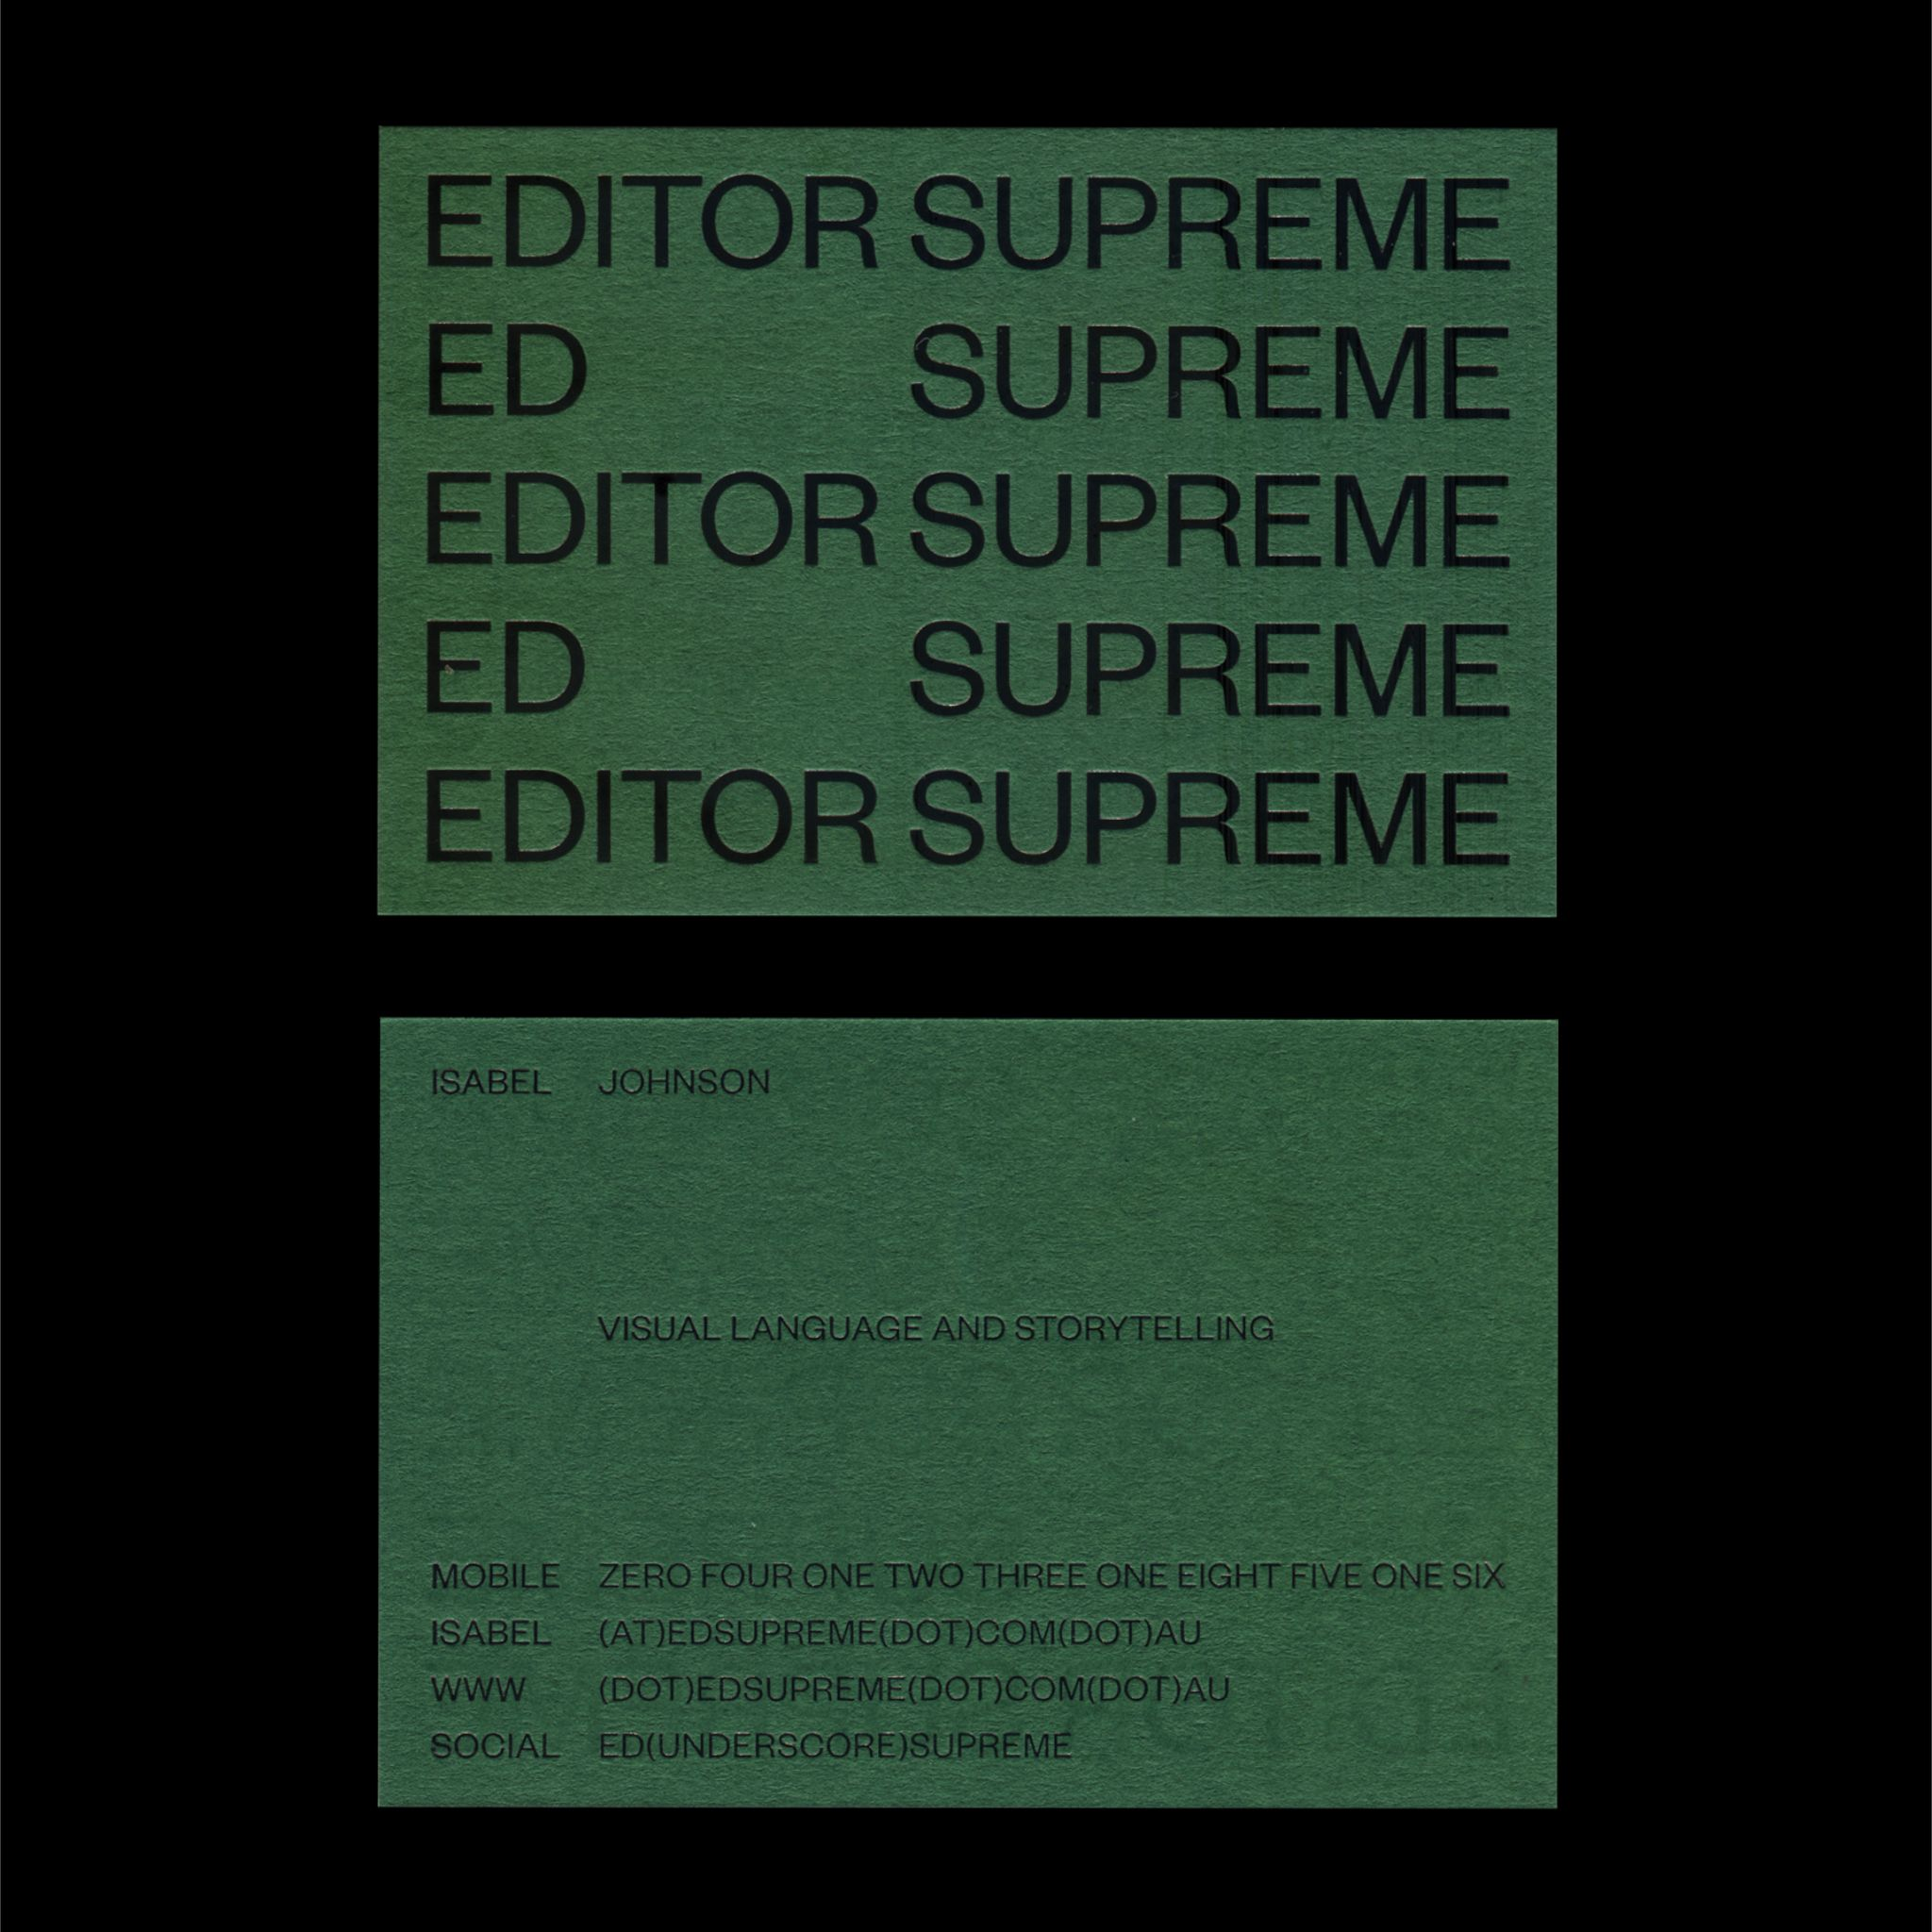 EDITOR SUPREME · Fonts In Use · Klim Type Foundry Editor